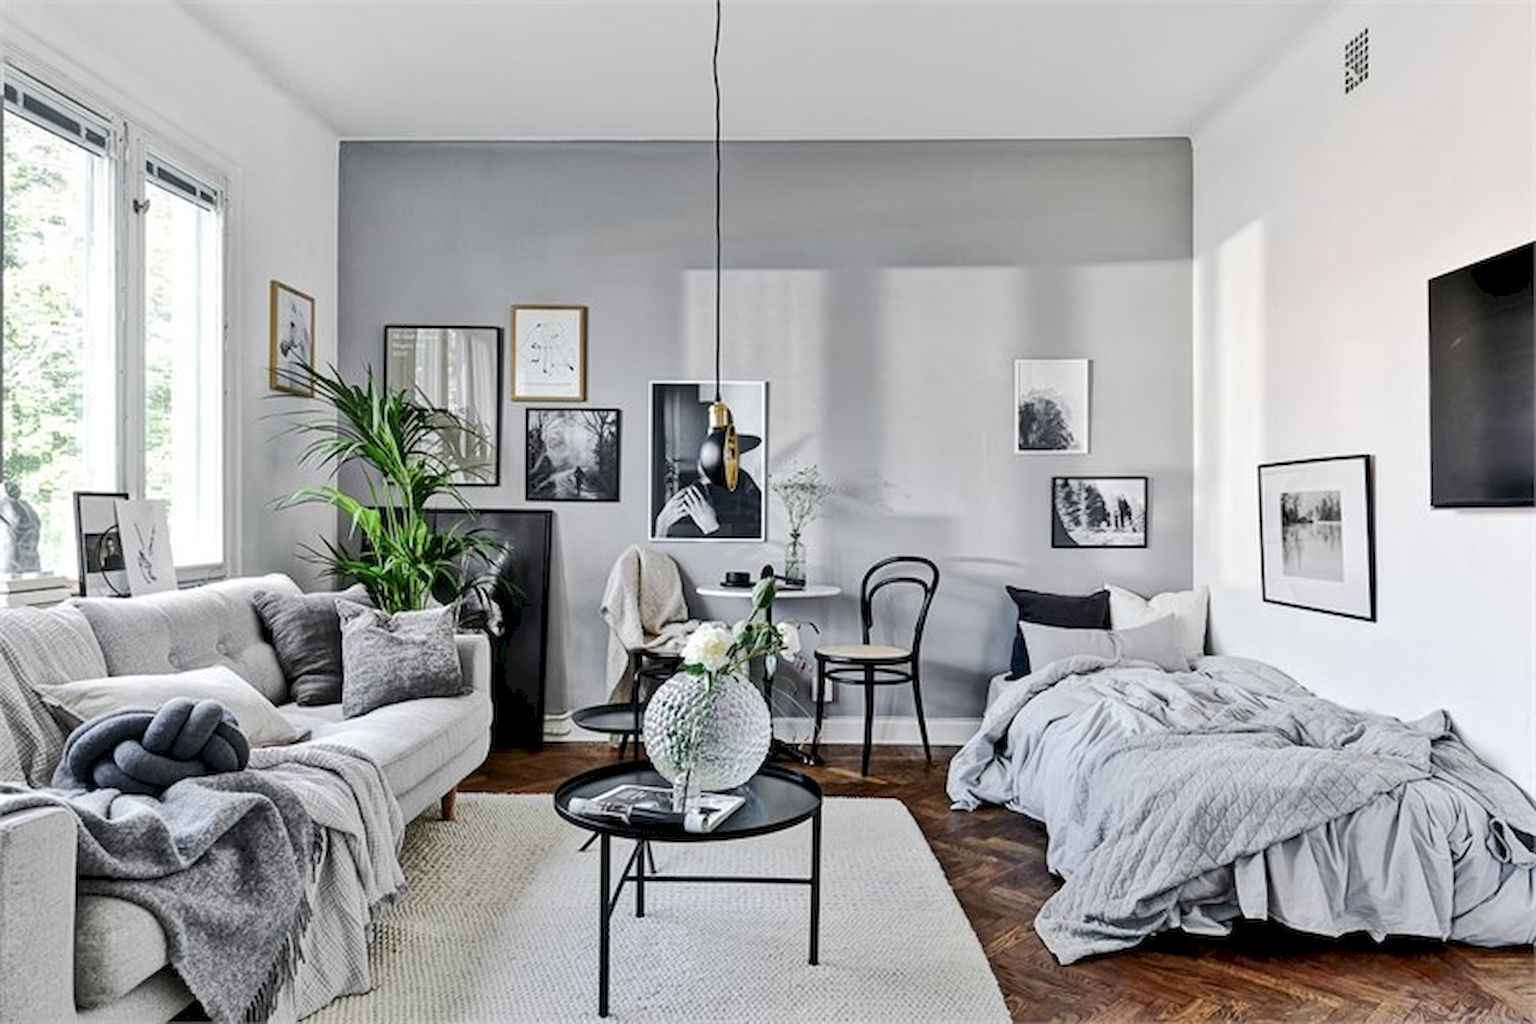 Cool small apartment decorating ideas on a budget (33)